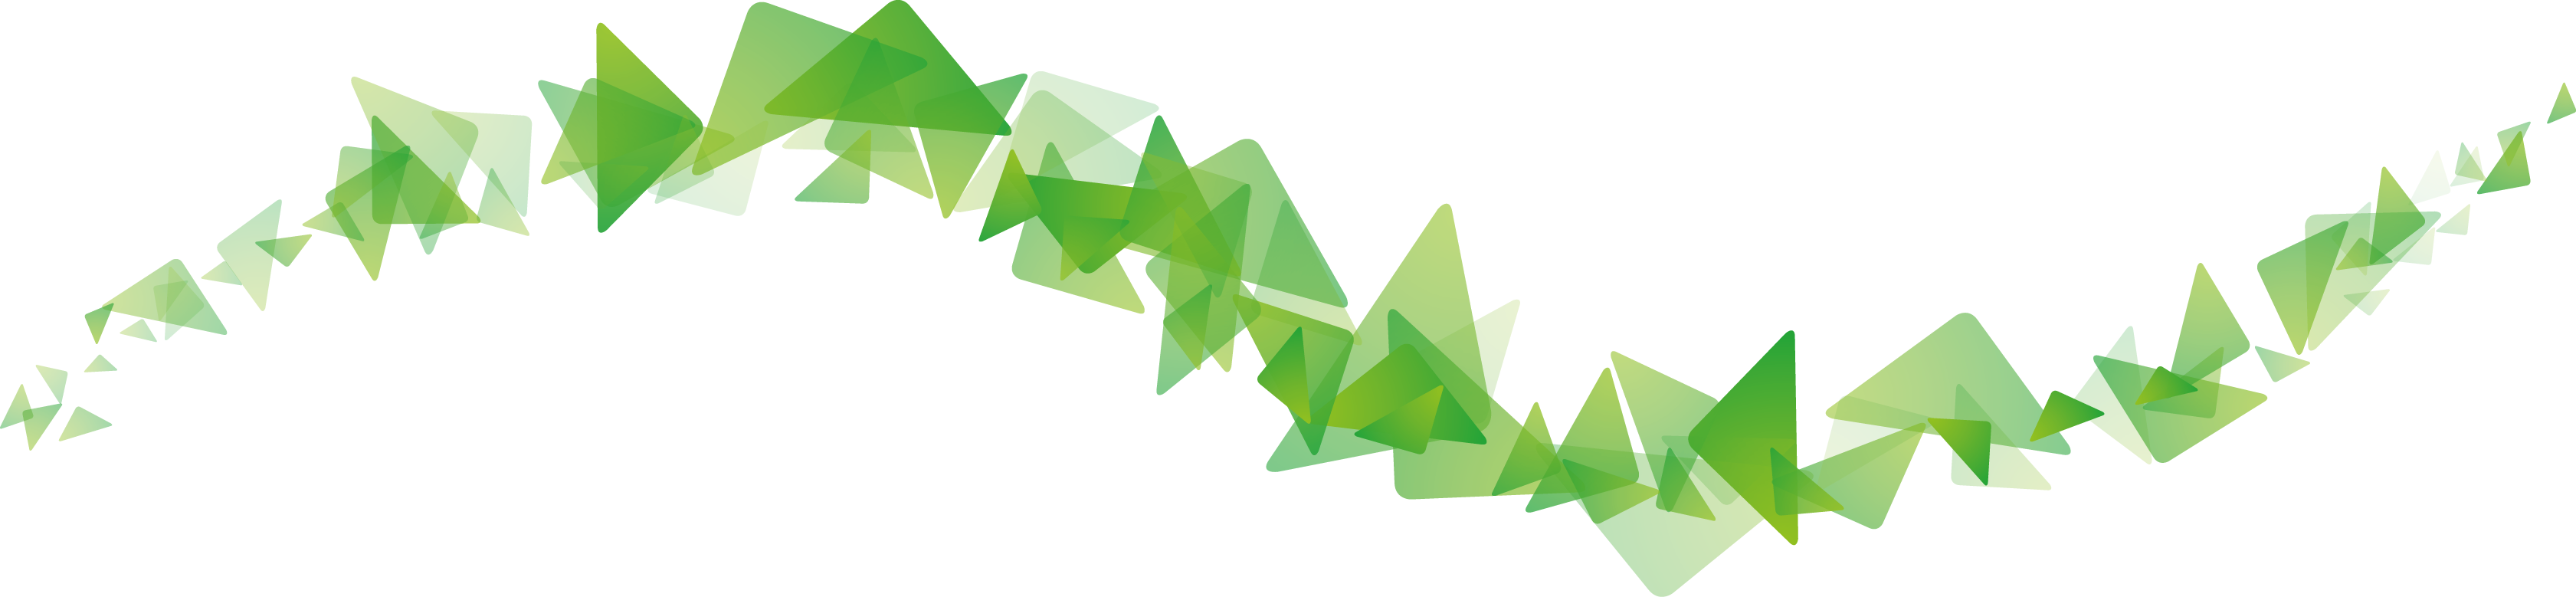 Pathway clipart green design. Perfect grass elements vector